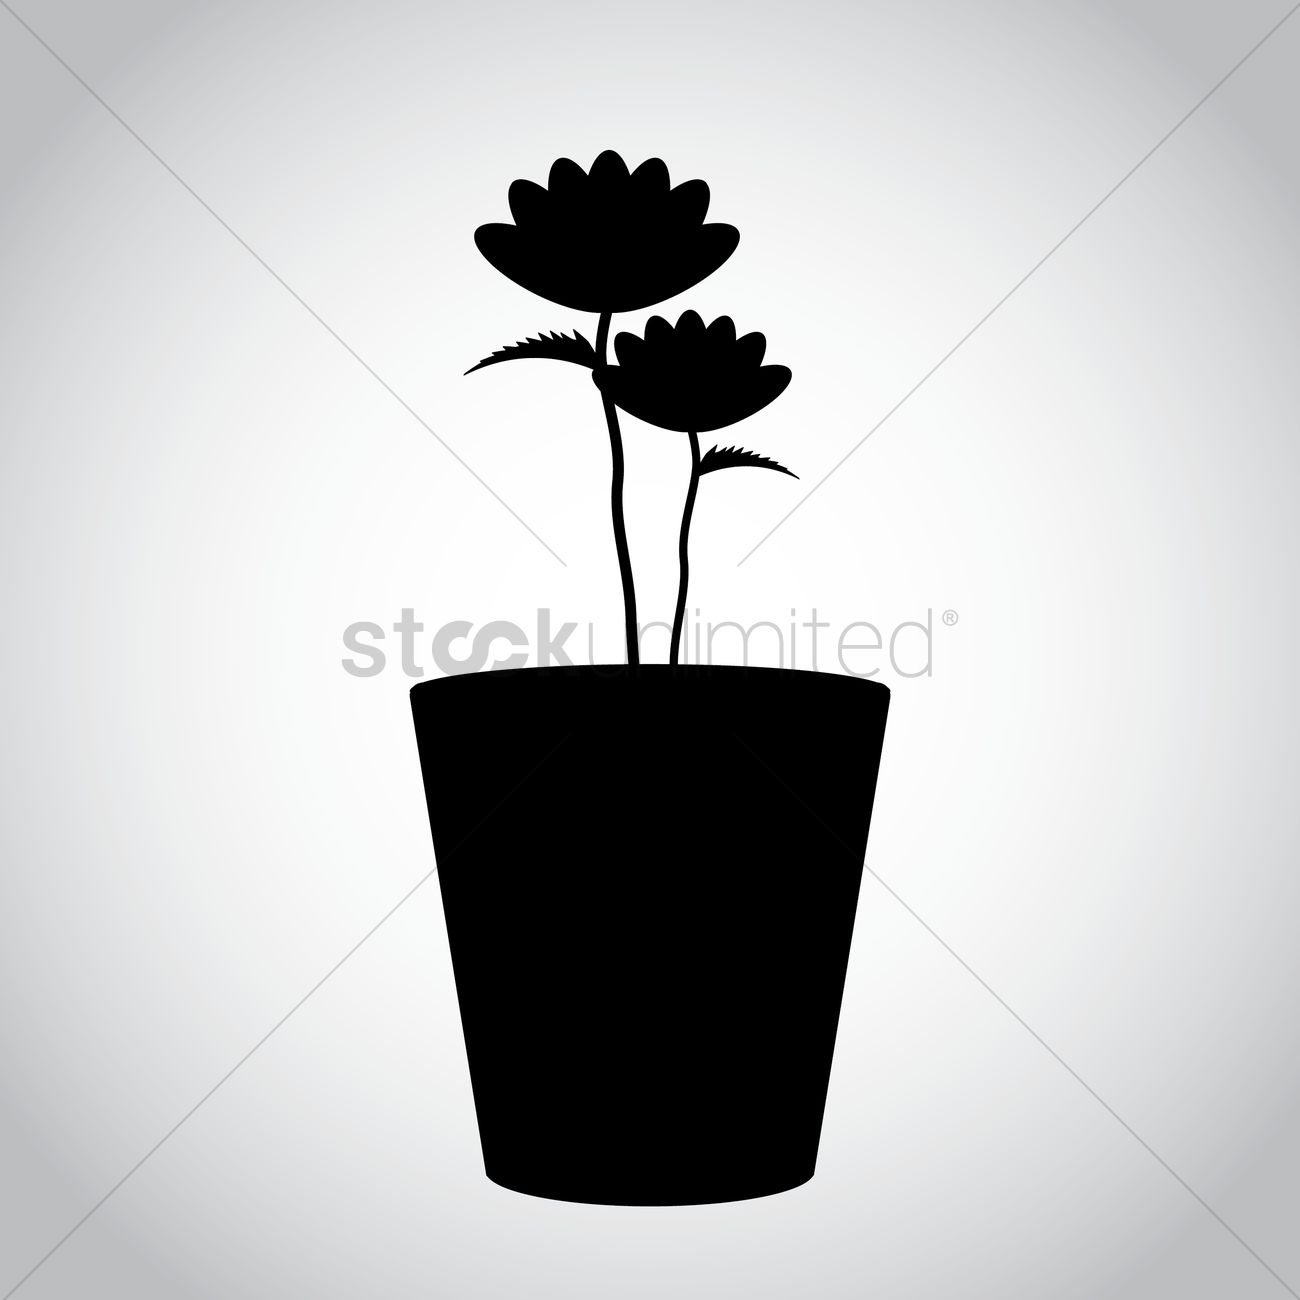 1300x1300 Silhouette Of Potted Plant With Flowers Vector Image